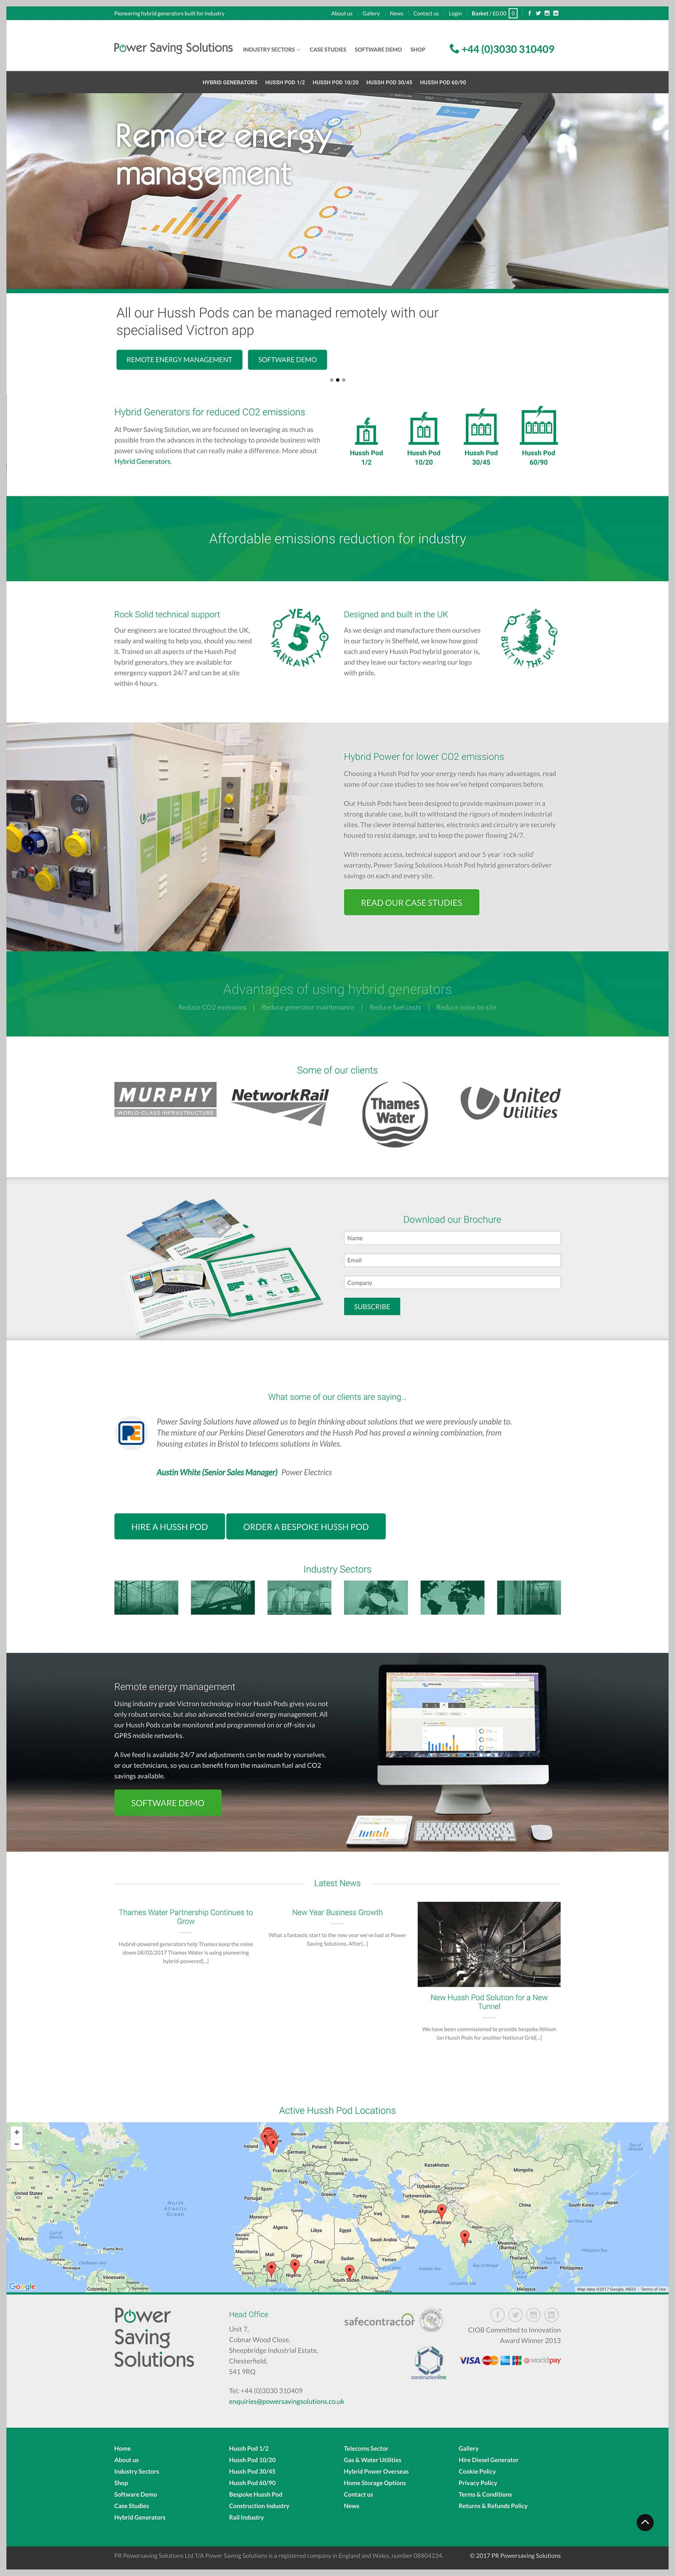 Power Saving Solutions website home page design